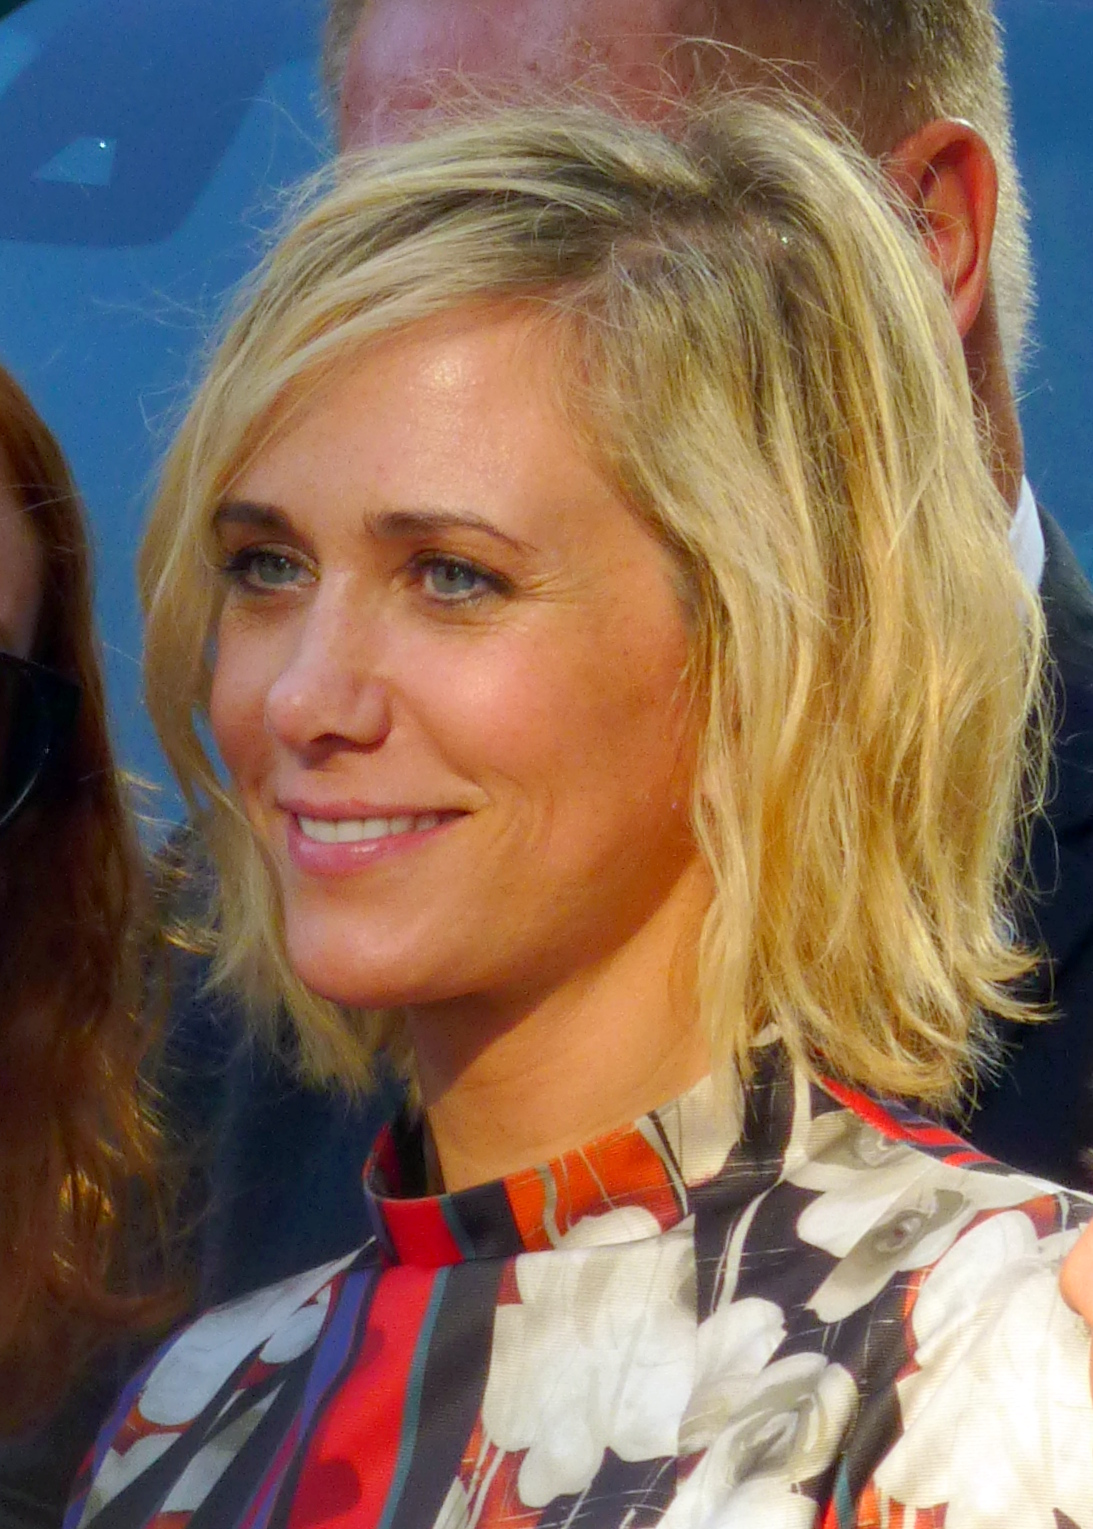 The 46-year old daughter of father (?) and mother(?) Kristen Wiig in 2020 photo. Kristen Wiig earned a million dollar salary - leaving the net worth at 16 million in 2020